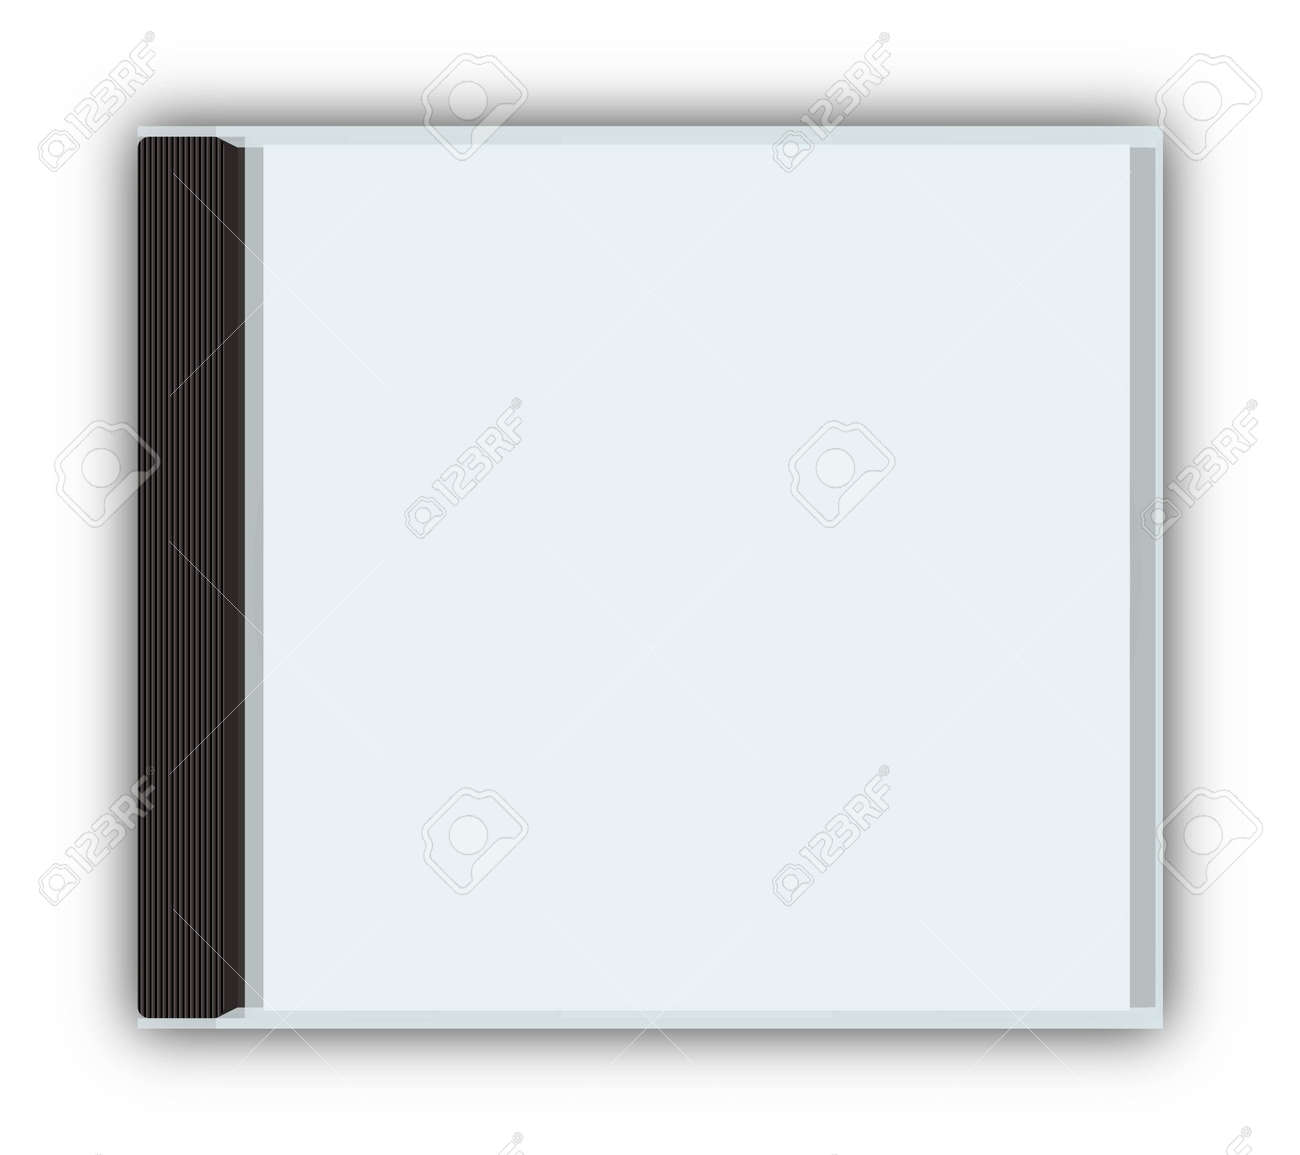 cd dvd closed jewel case template with paths stock photo picture